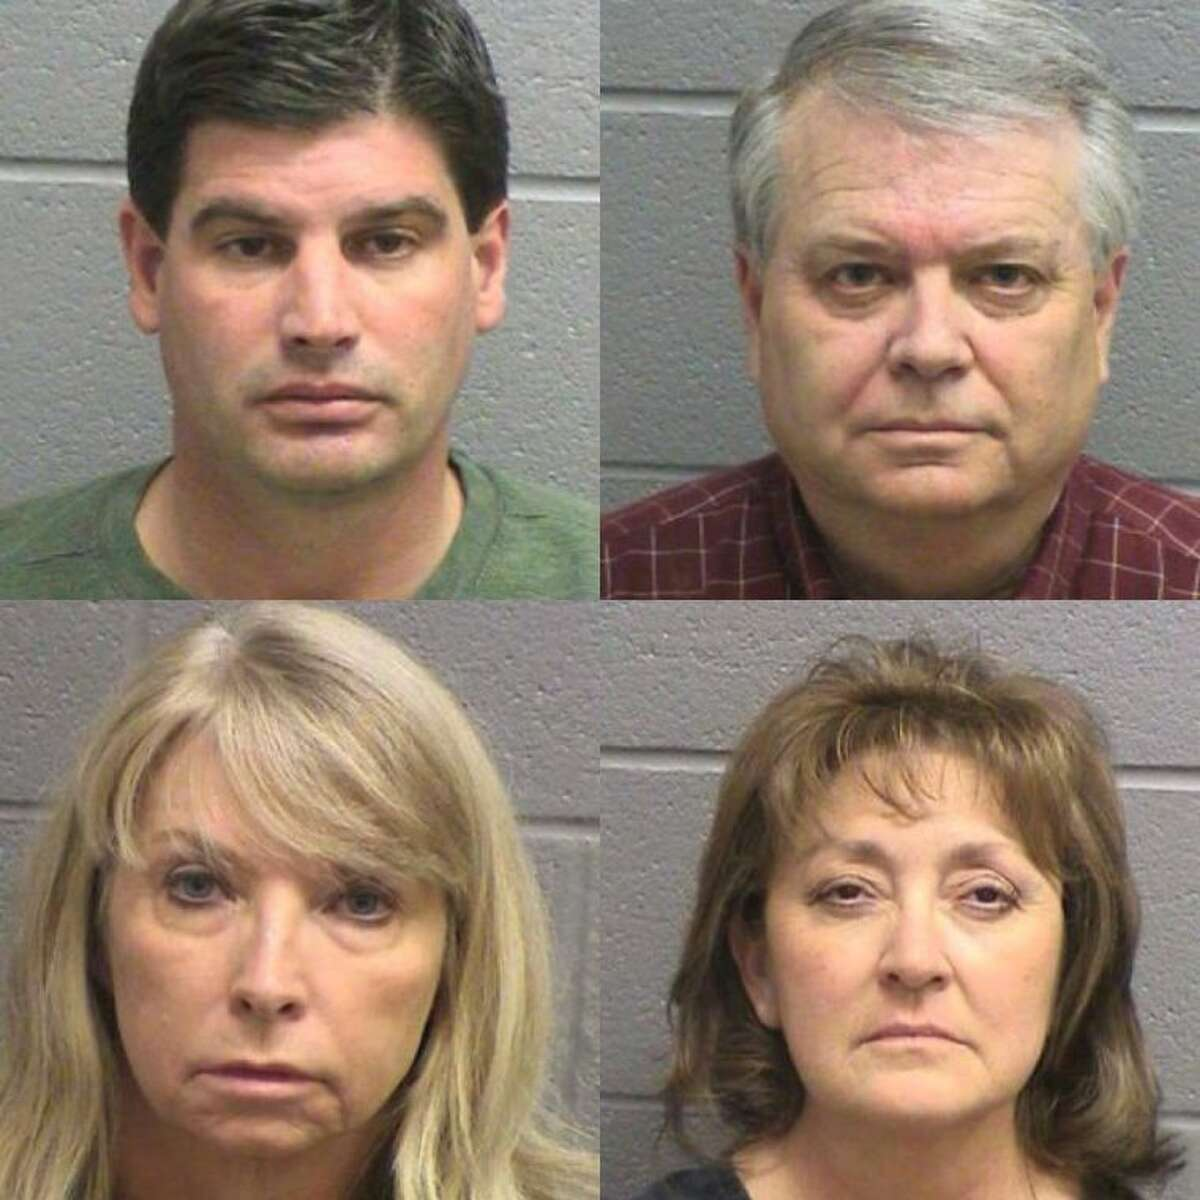 Michael Duraine Cowan II, 42, top left; Stephen Mark Hilliard, 58, top right; Cynthia Gayle Hirsch, 61, bottom left; and Berta Laura McFaddin, 55, bottom right, face federal charges of conspiracy to commit bank fraud. Hilliard and Cowan were also charged with money laundering.The four defendants were allegedly involved in a real estate scam that involved 800 properties and $45 million in bank loans.If convicted of the federal crime of conspiracy to commit bank fraud, each defendant could receive a 30-year prison sentence, a term of supervised release not to exceed three years and a fine not to exceed $1 million. If Hilliard and Cowan are found guilty, the pair could also face a 20-year prison sentence, a term of supervised release not to exceed three years and a fine not to exceed $500,000.